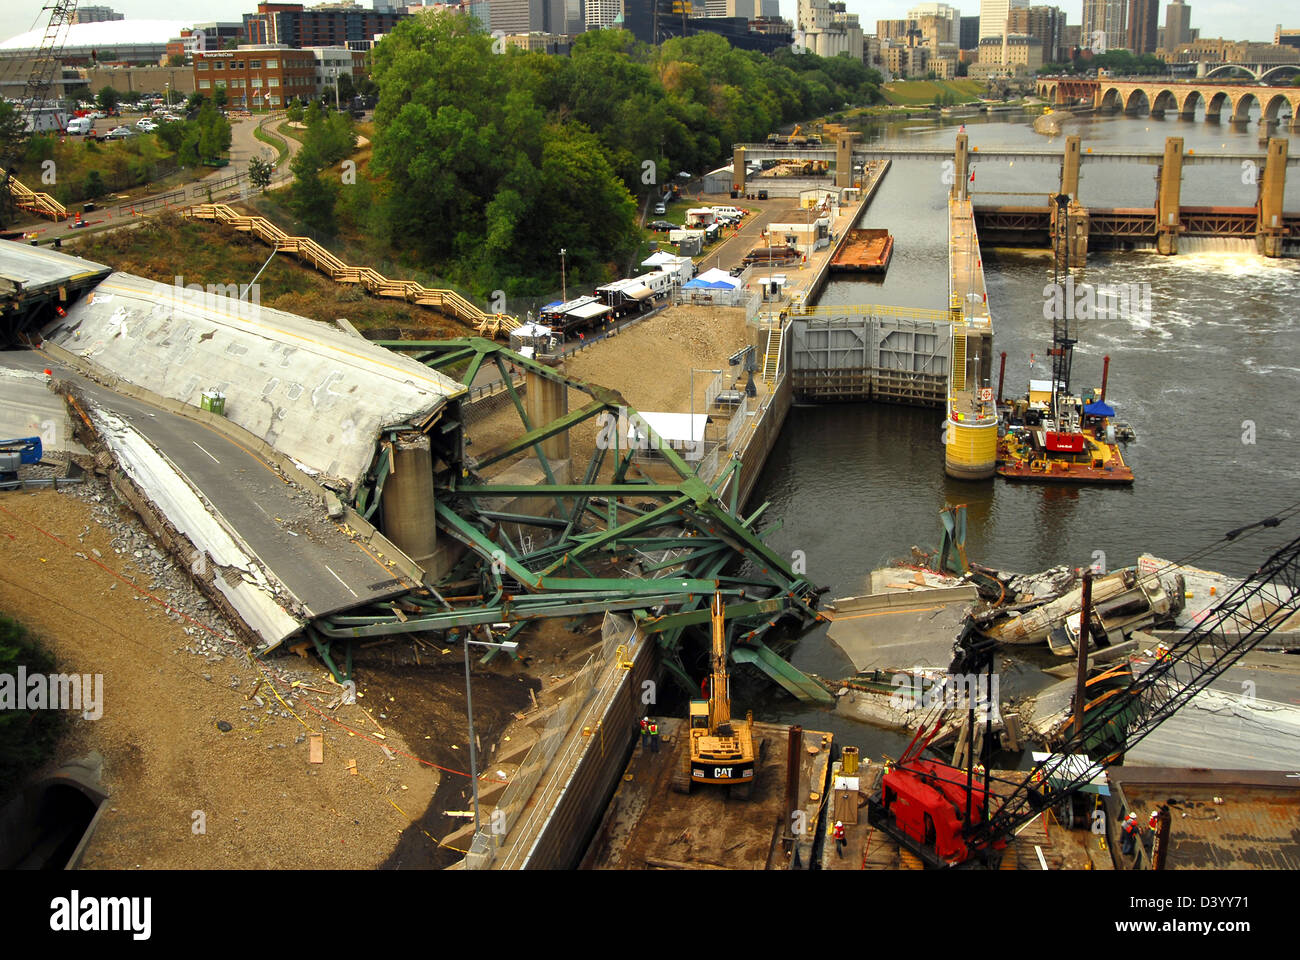 View of the remains of the I-35 bridge collapse August 8, 2007 in Minneapolis, MN. The bridge suddenly collapsed - Stock Image